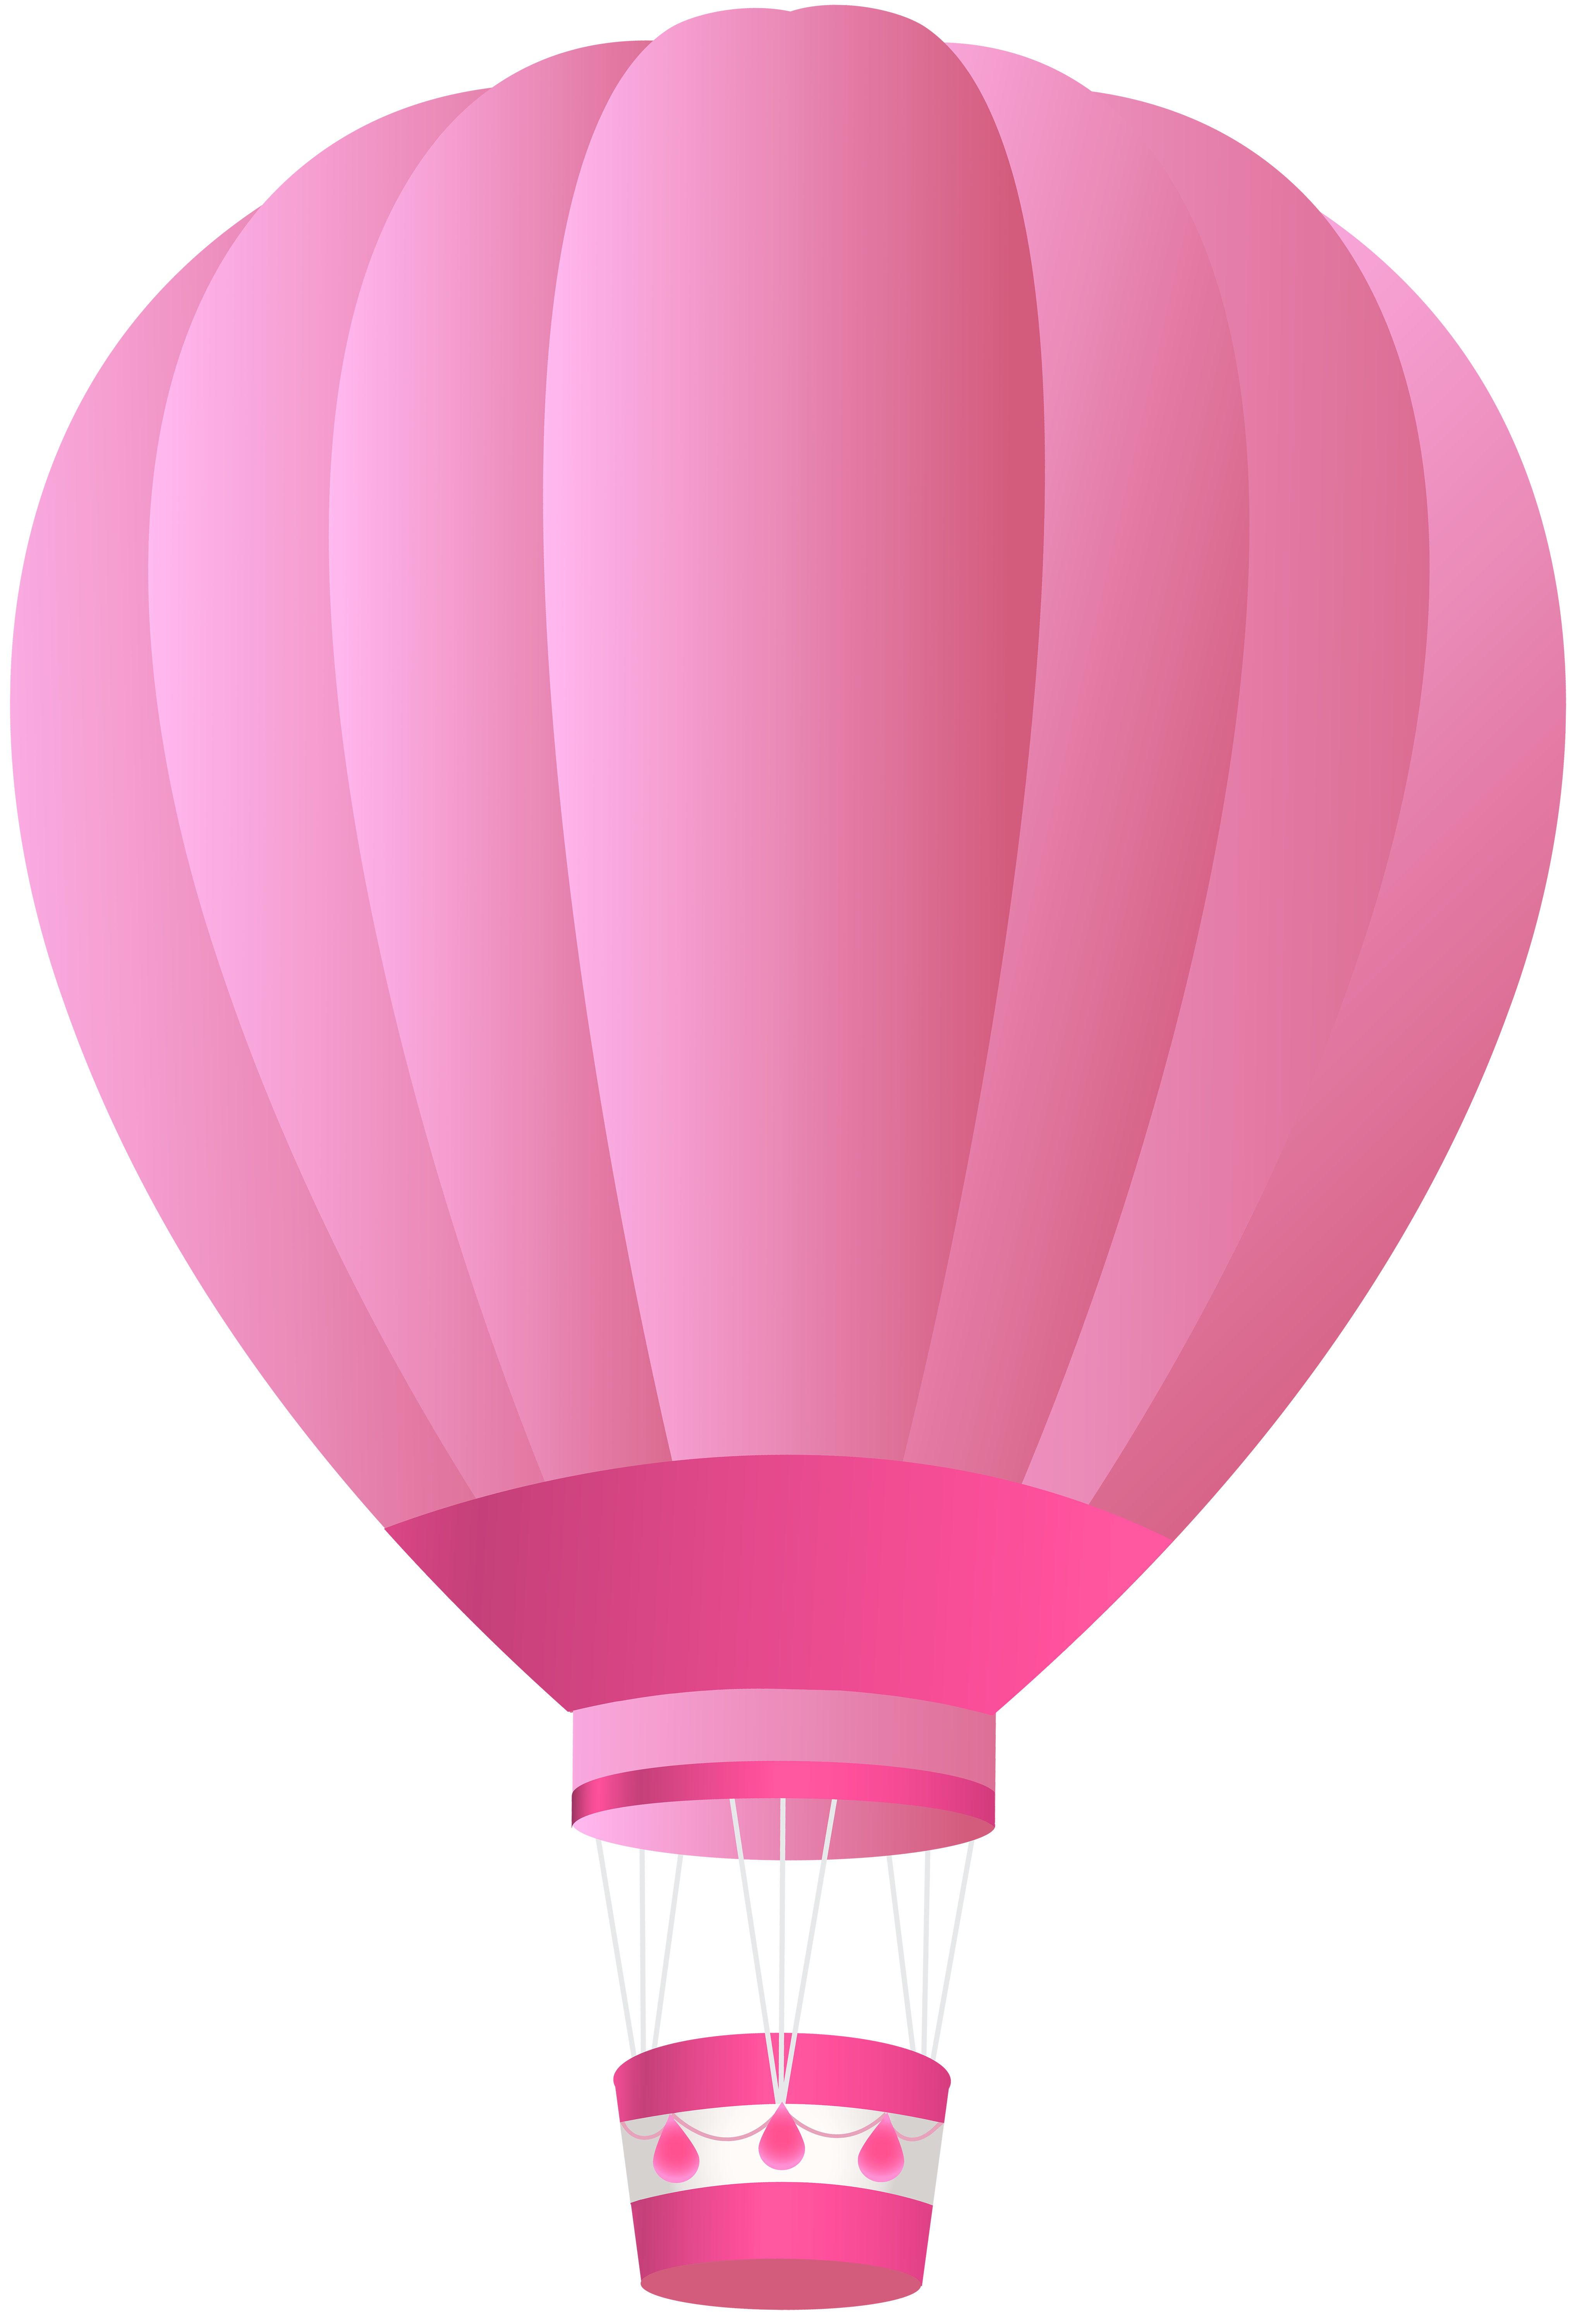 Throwing money in air clipart image library library Pink Air Balloon Clip Art PNG Image | Gallery Yopriceville - High ... image library library